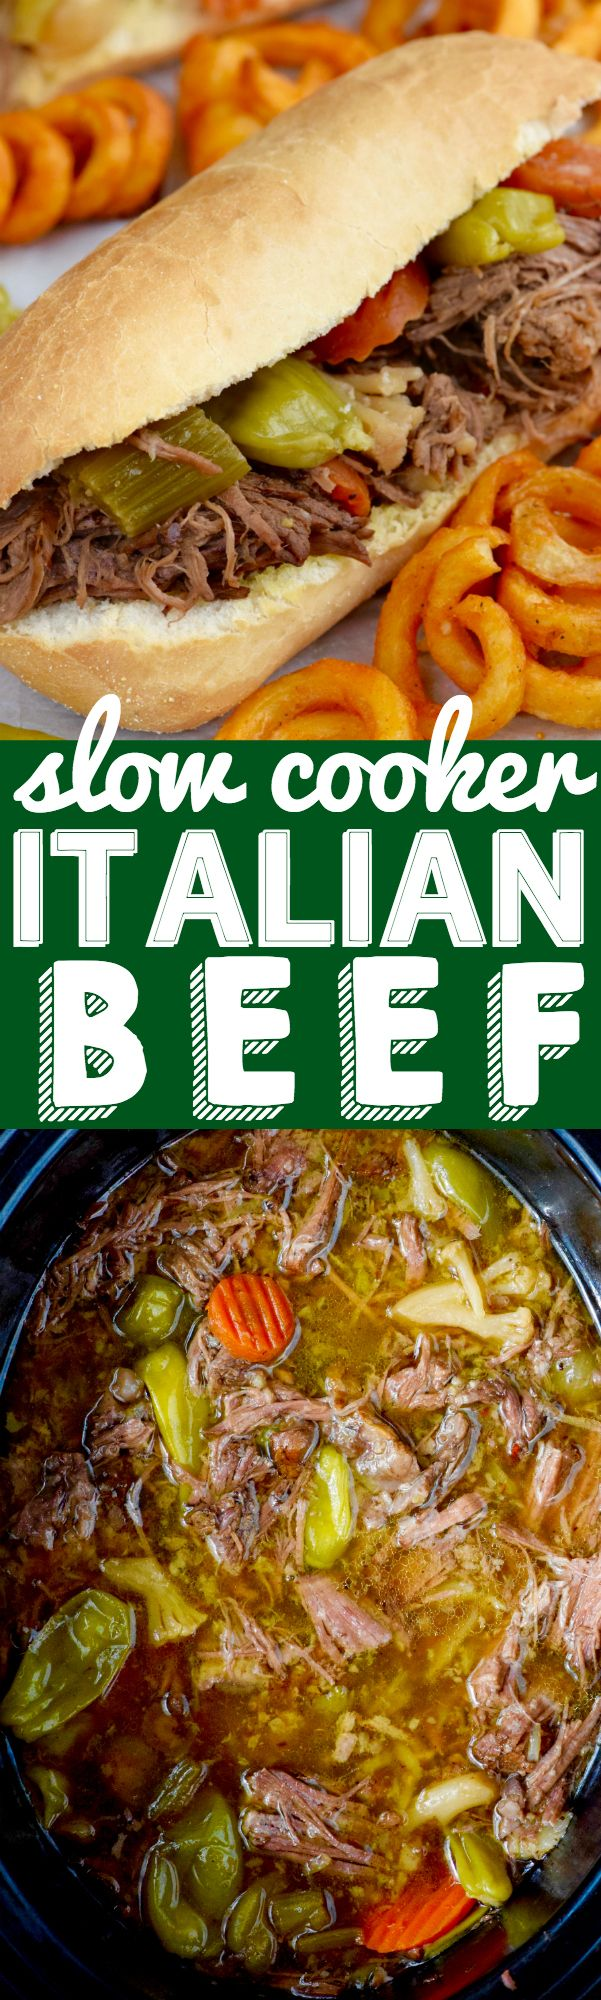 These Slow Cooker Italian Beef Sandwiches are about 10 minutes of hands on time…